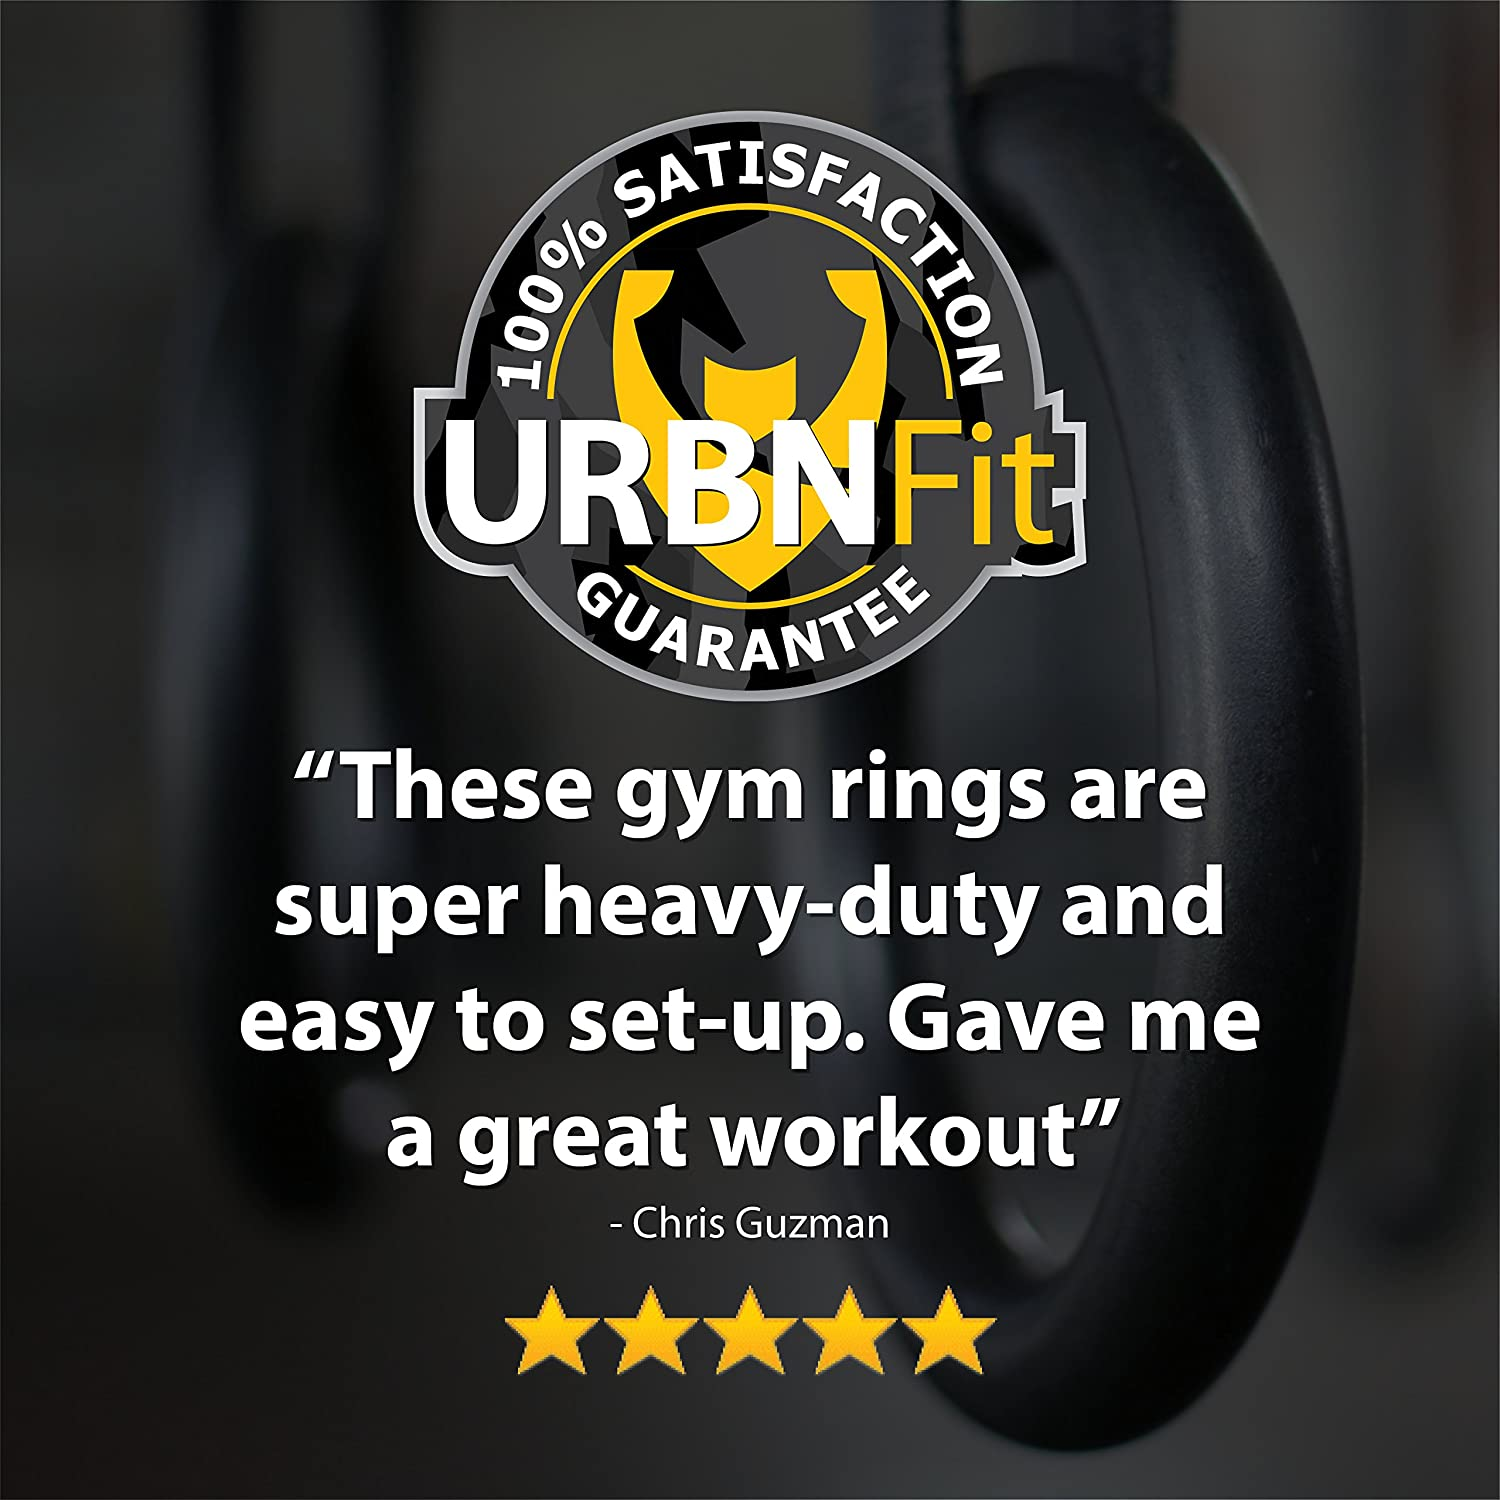 Bodyweight Workout and Strength Training Olympic Non-Slip Rings with Adjustable Straps for Crossfit and at Home Gym Workouts URBNFit Gymnastic Rings